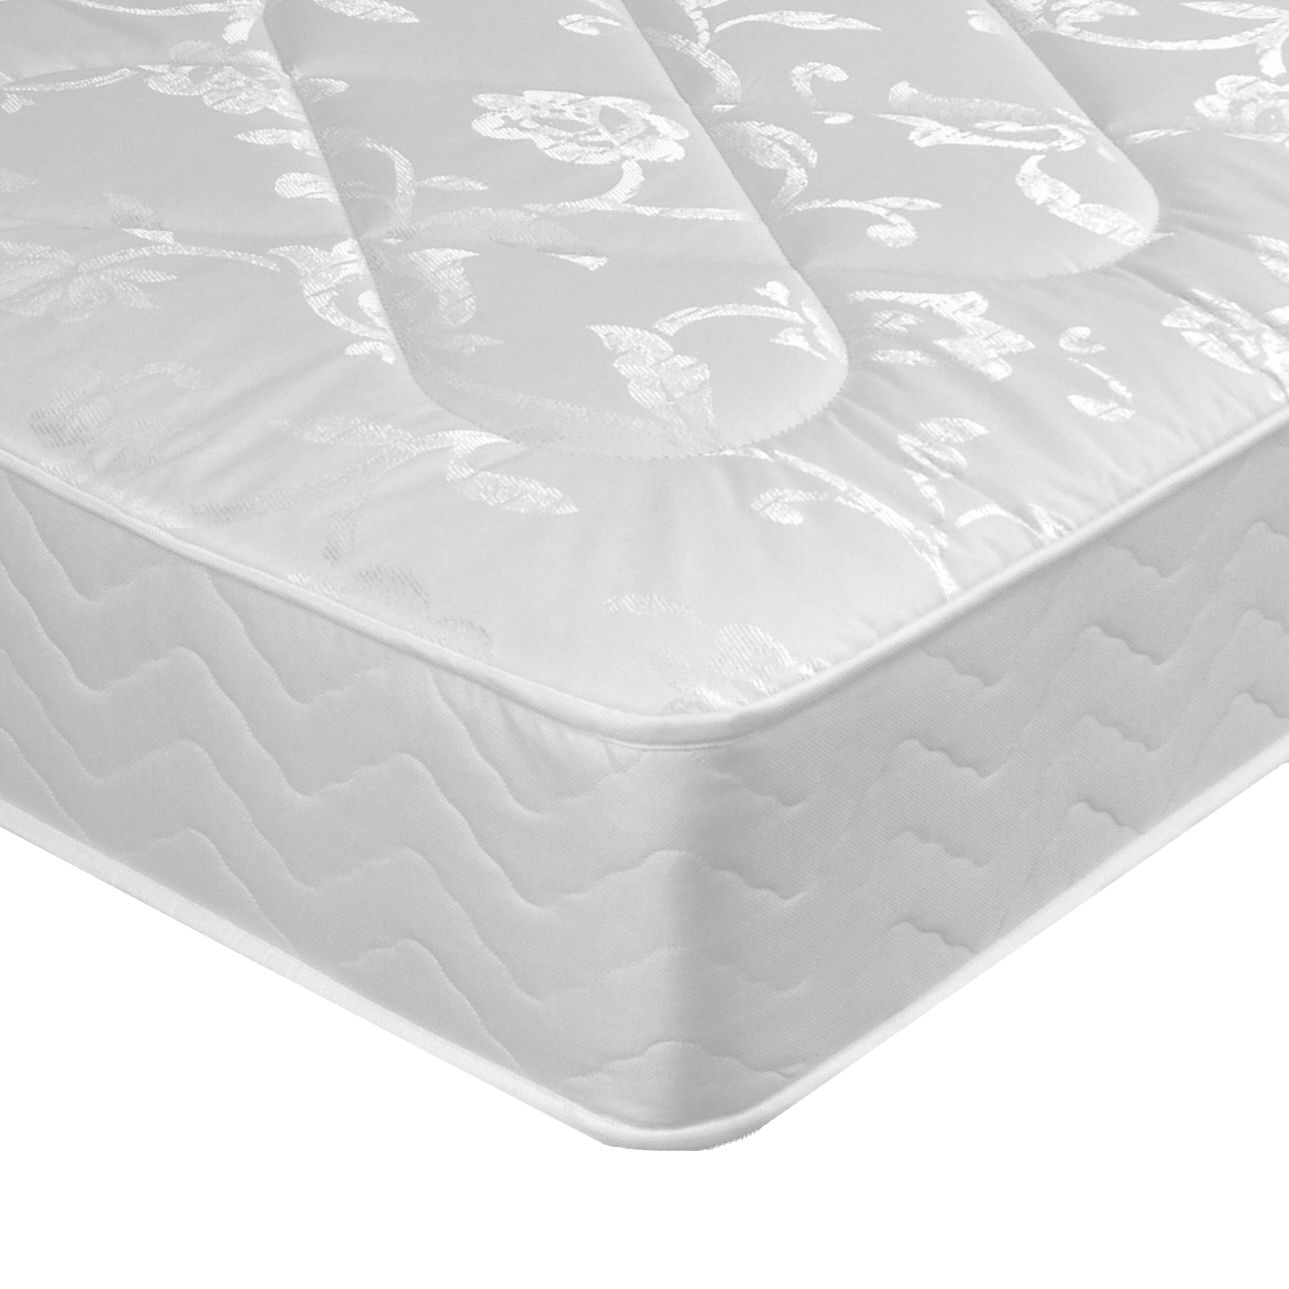 Pin on Mattresses